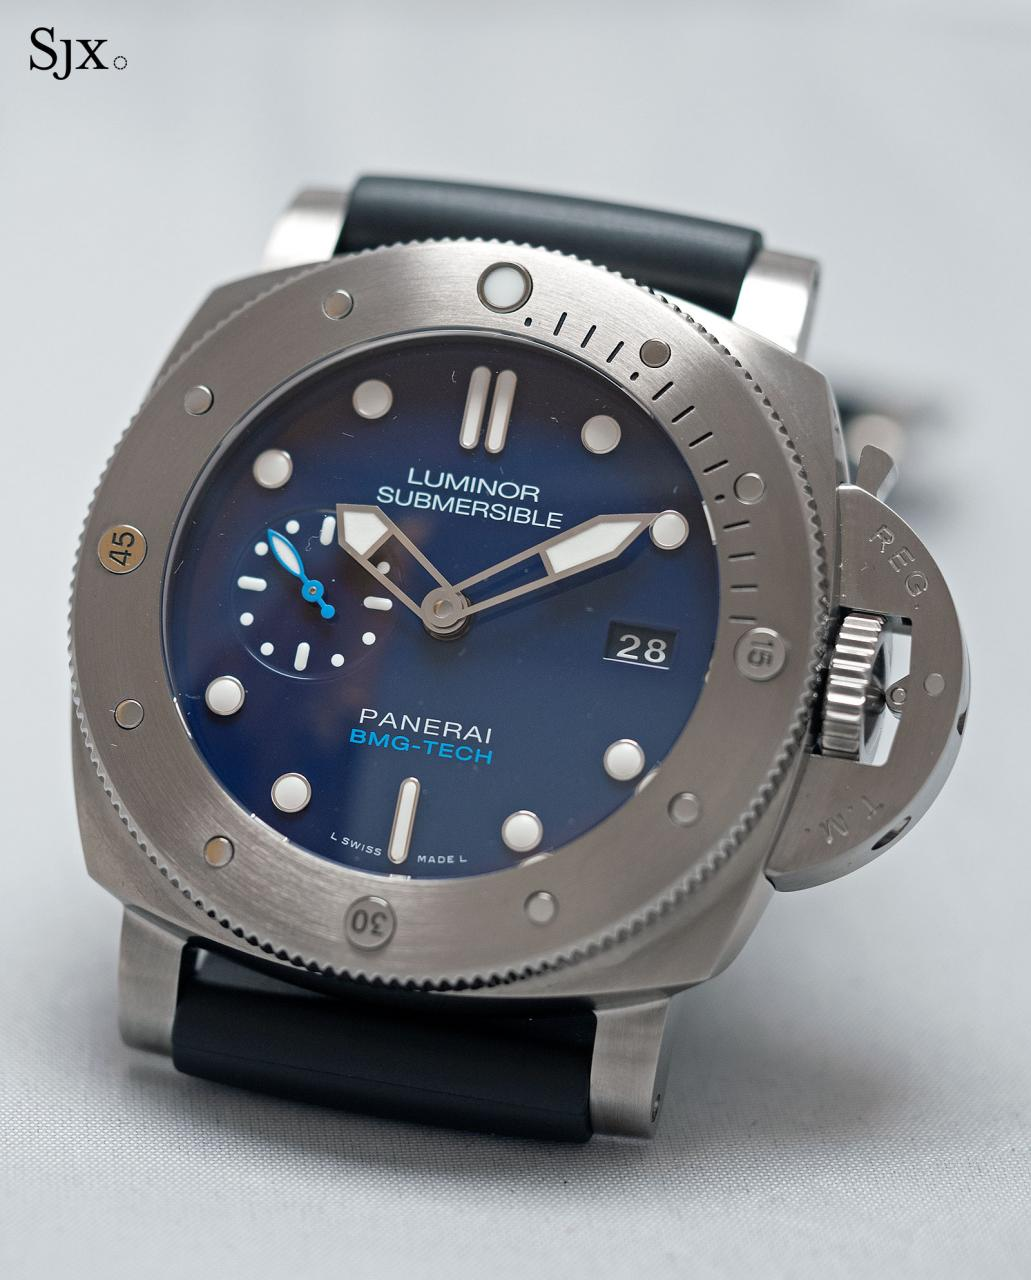 Panerai Luminor Submersible 1950 BMG-TECH PAM692-1